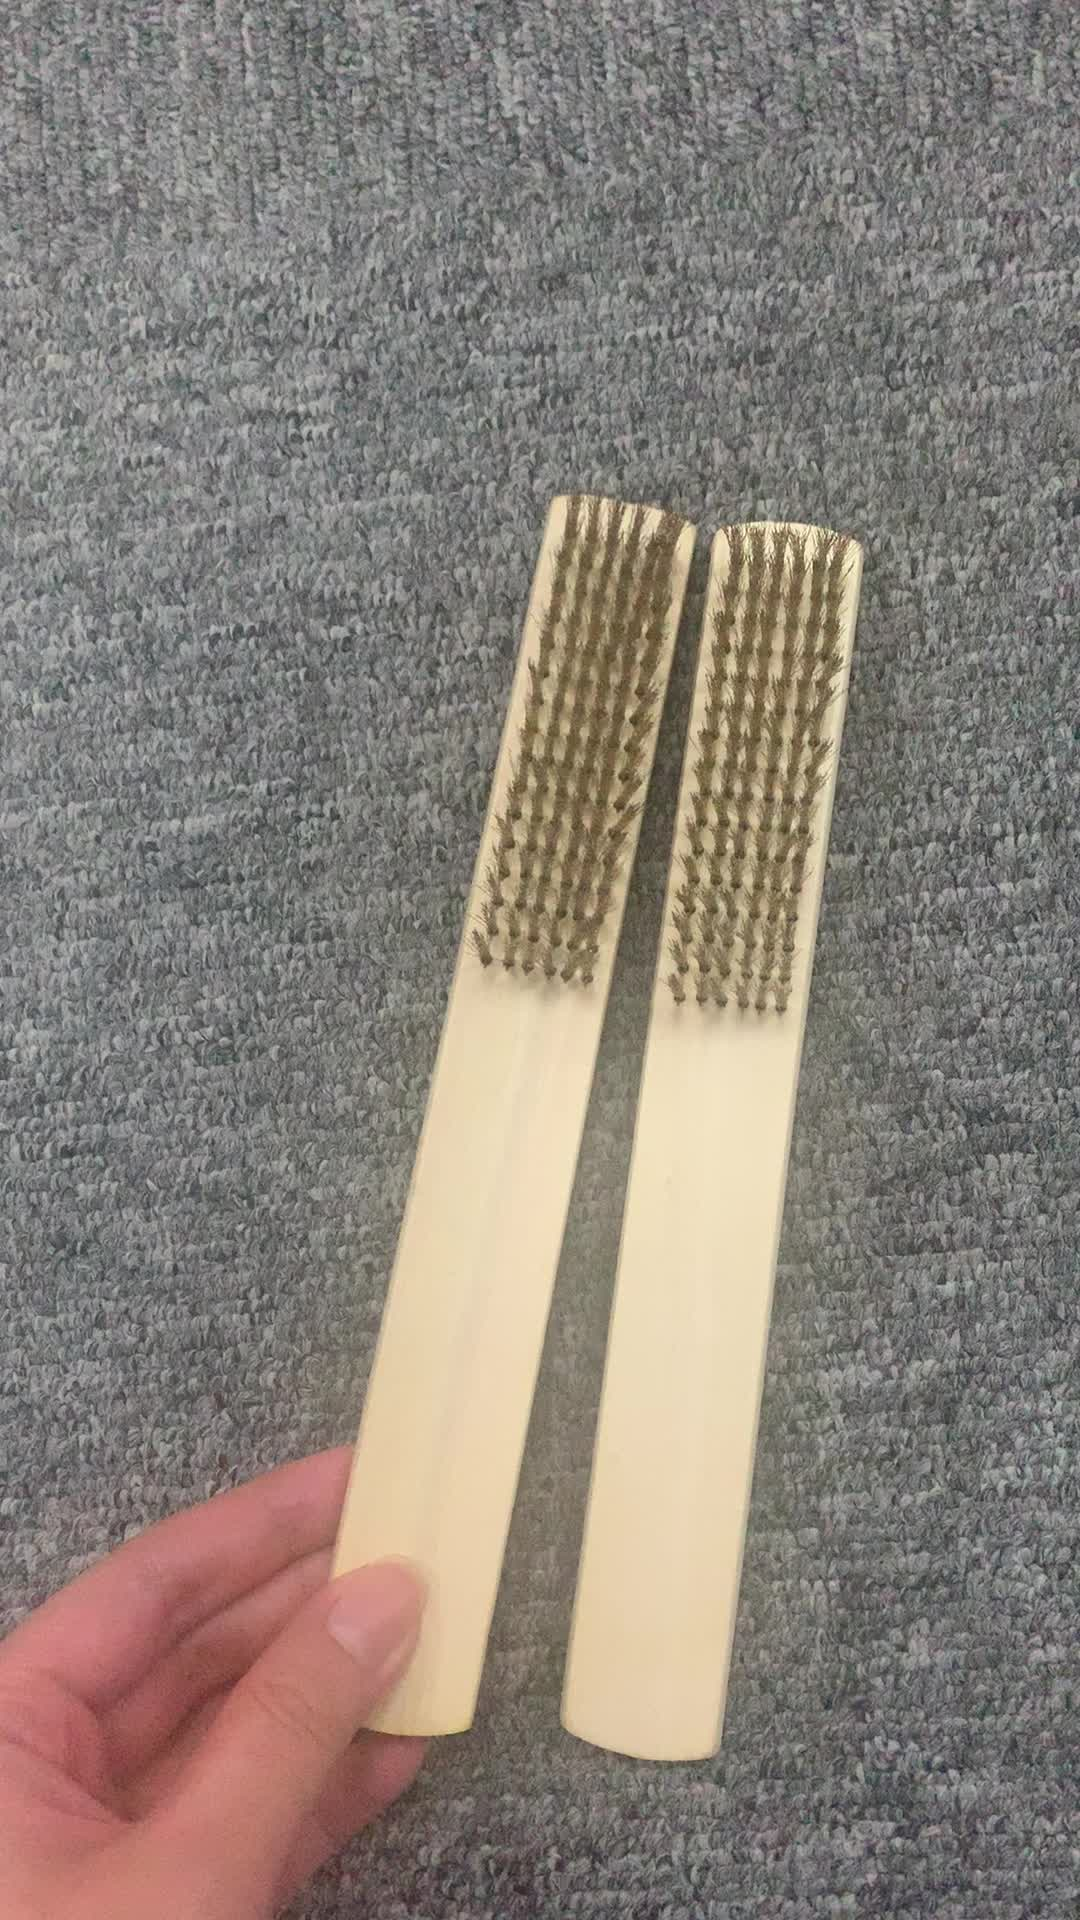 Paint cleaning copper wire brush with wooden handle